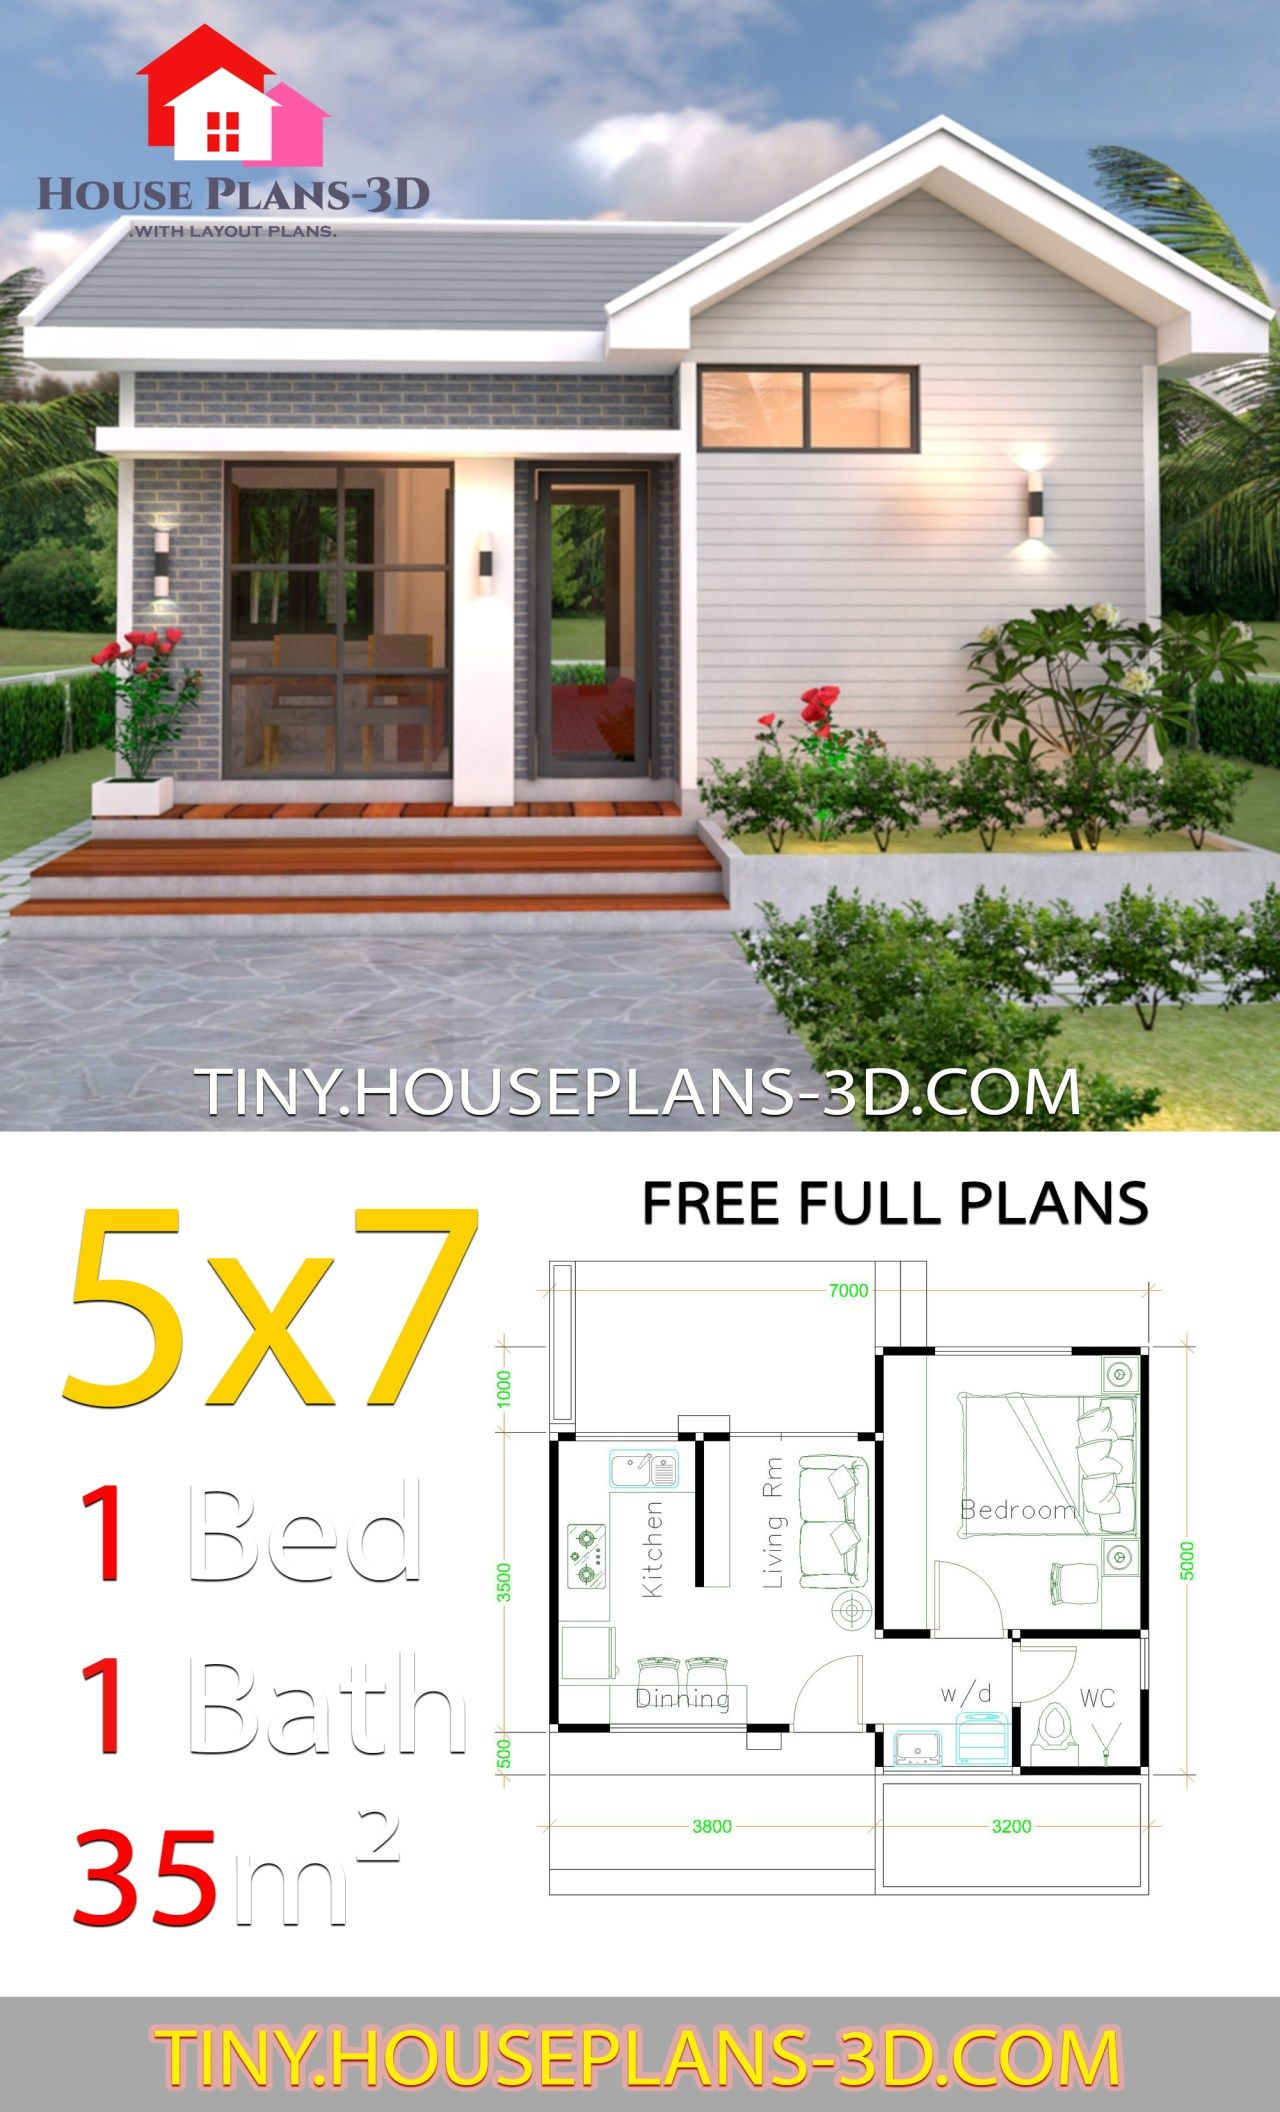 Small House Design Plans 5x7 With One Bedroom Gable Roof Small House Design Plans Small House Design Tiny House Floor Plans